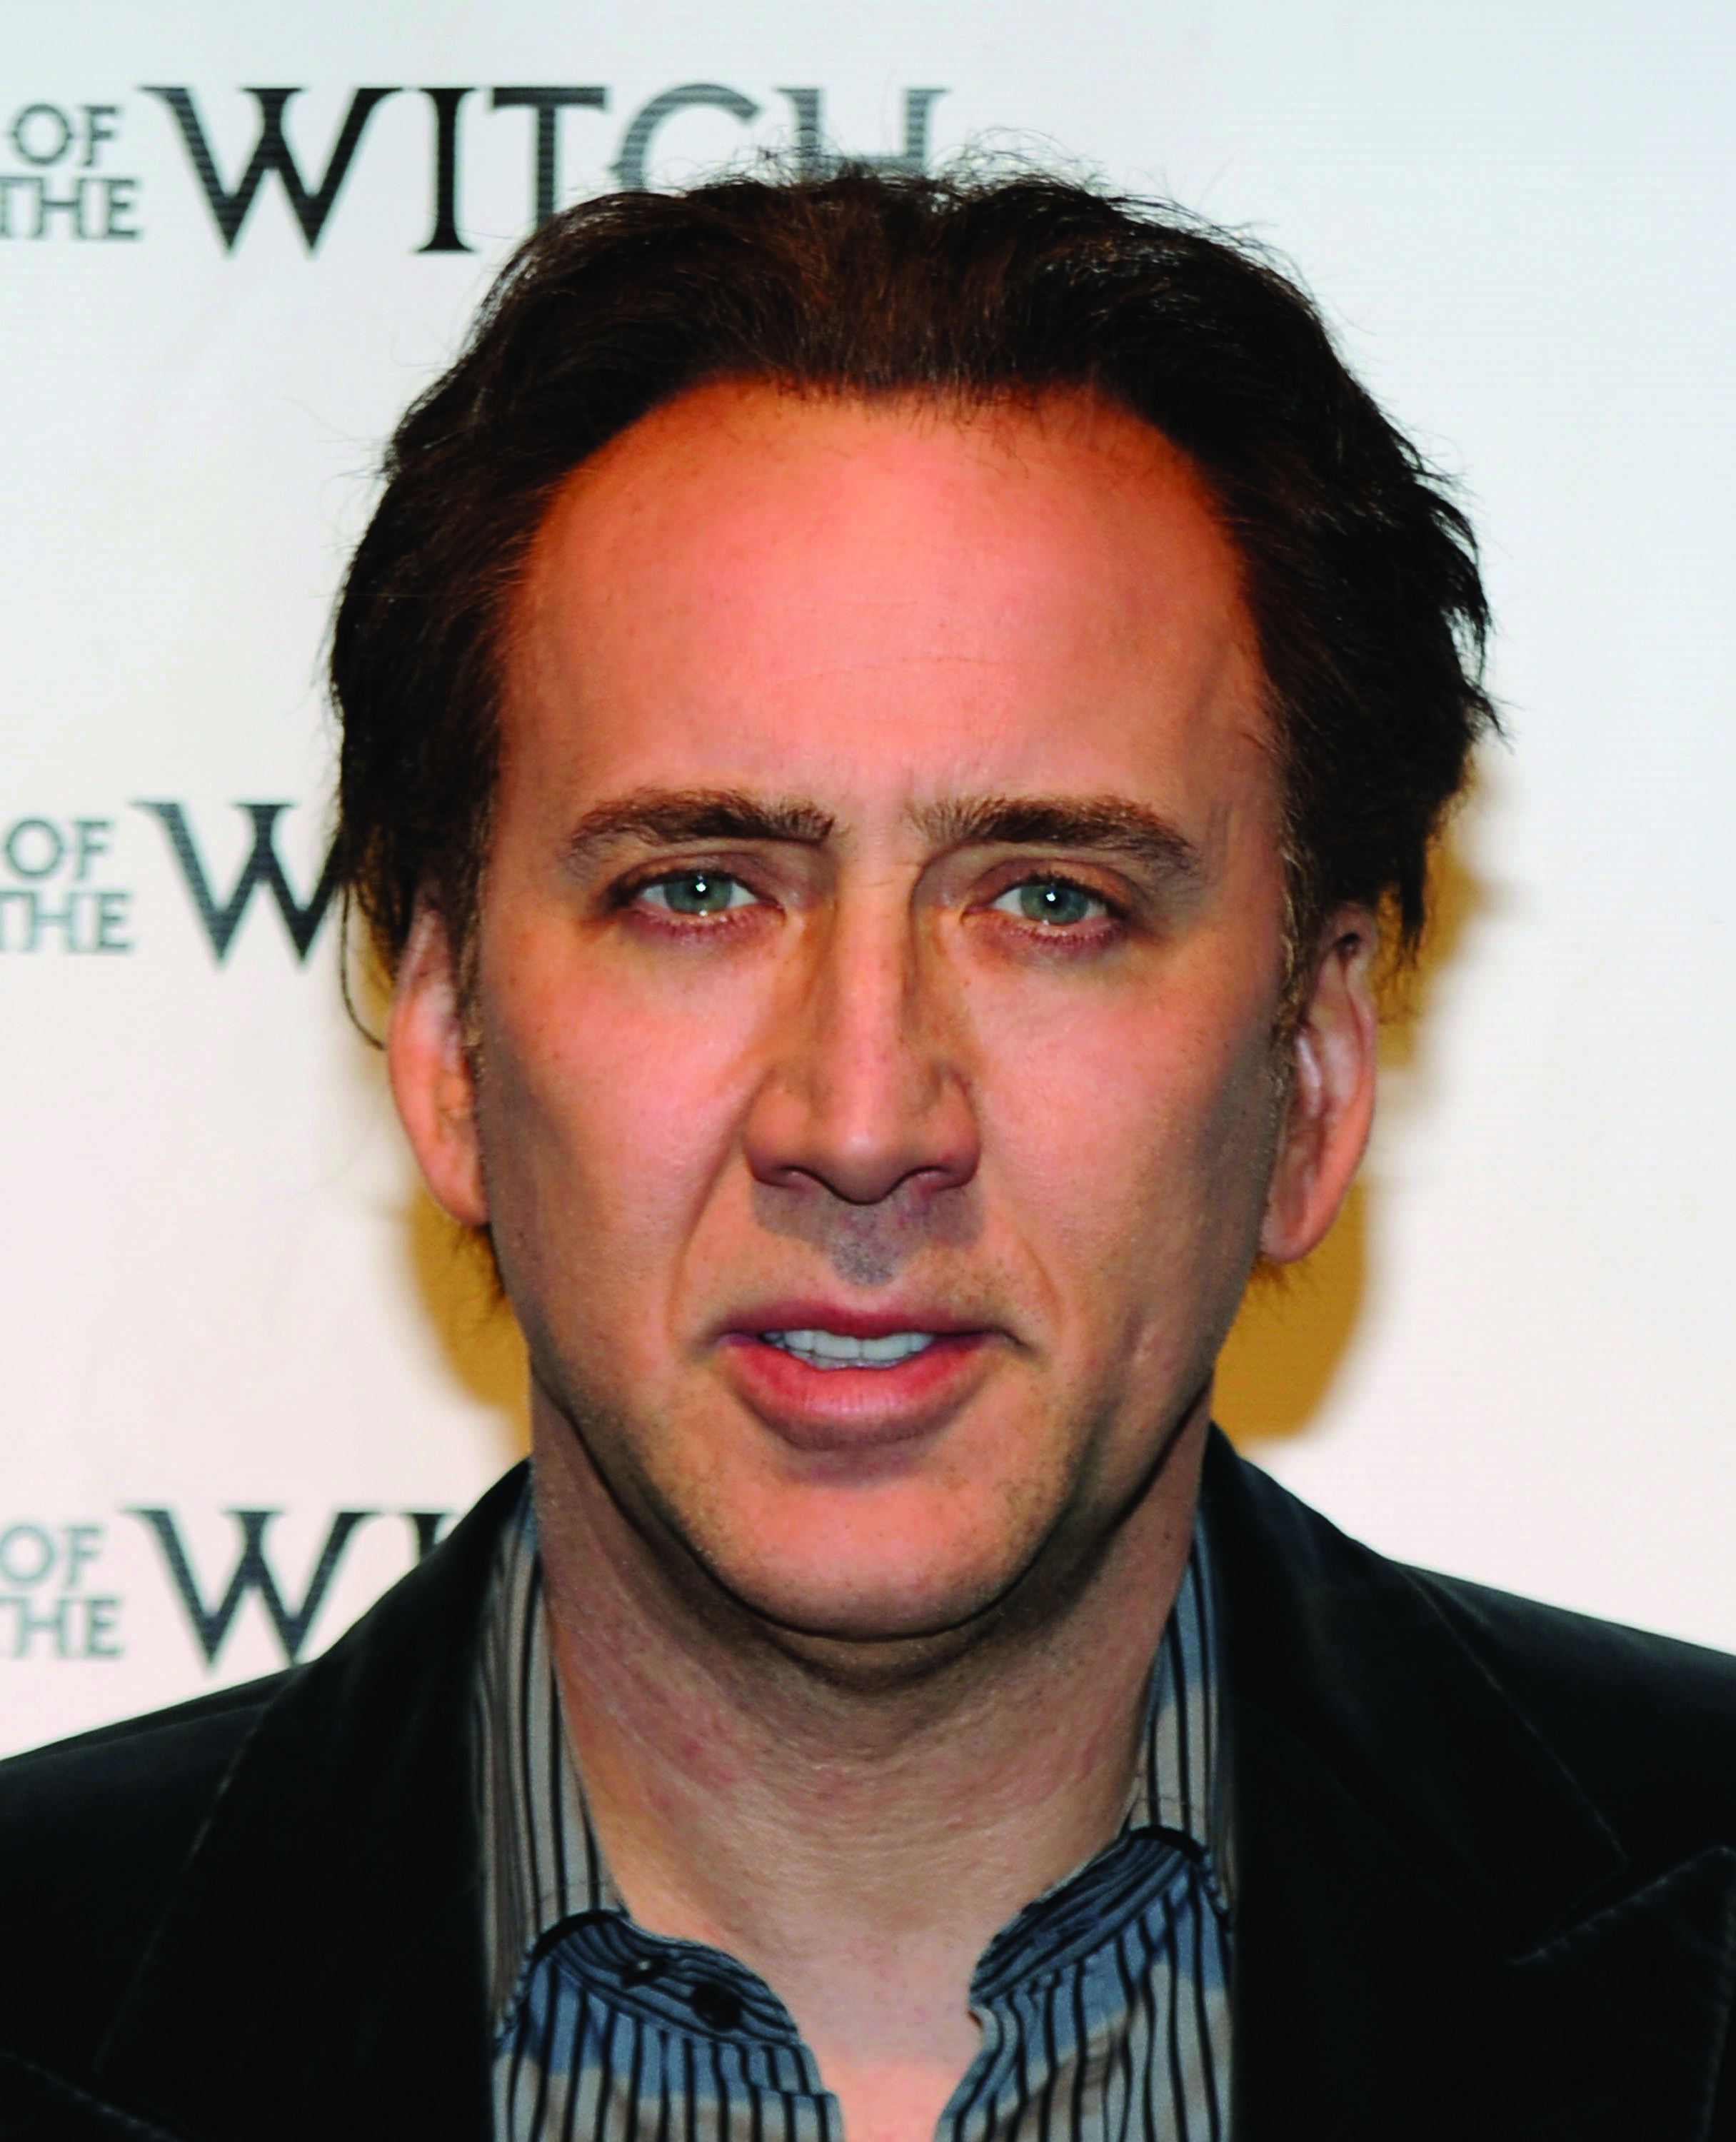 Photo by Larry Busacca - nicholas-cage1